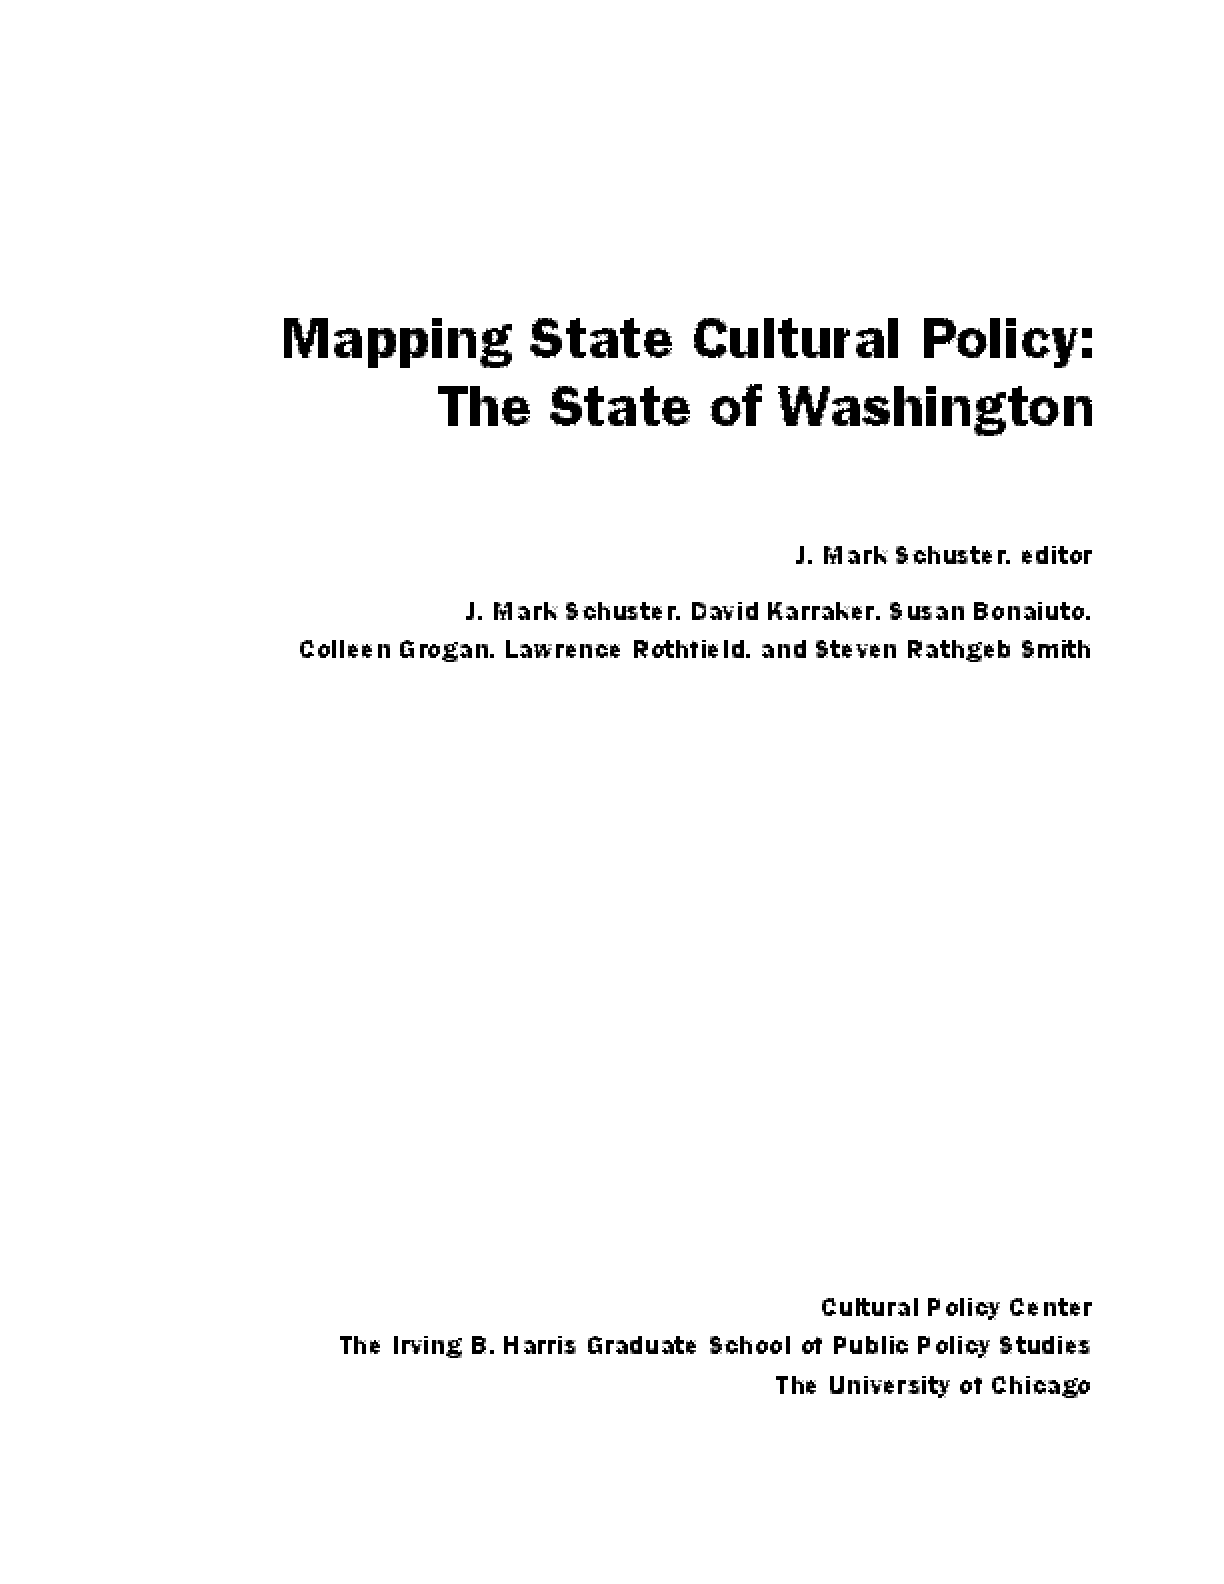 Mapping State Cultural Policy: The State of Washington